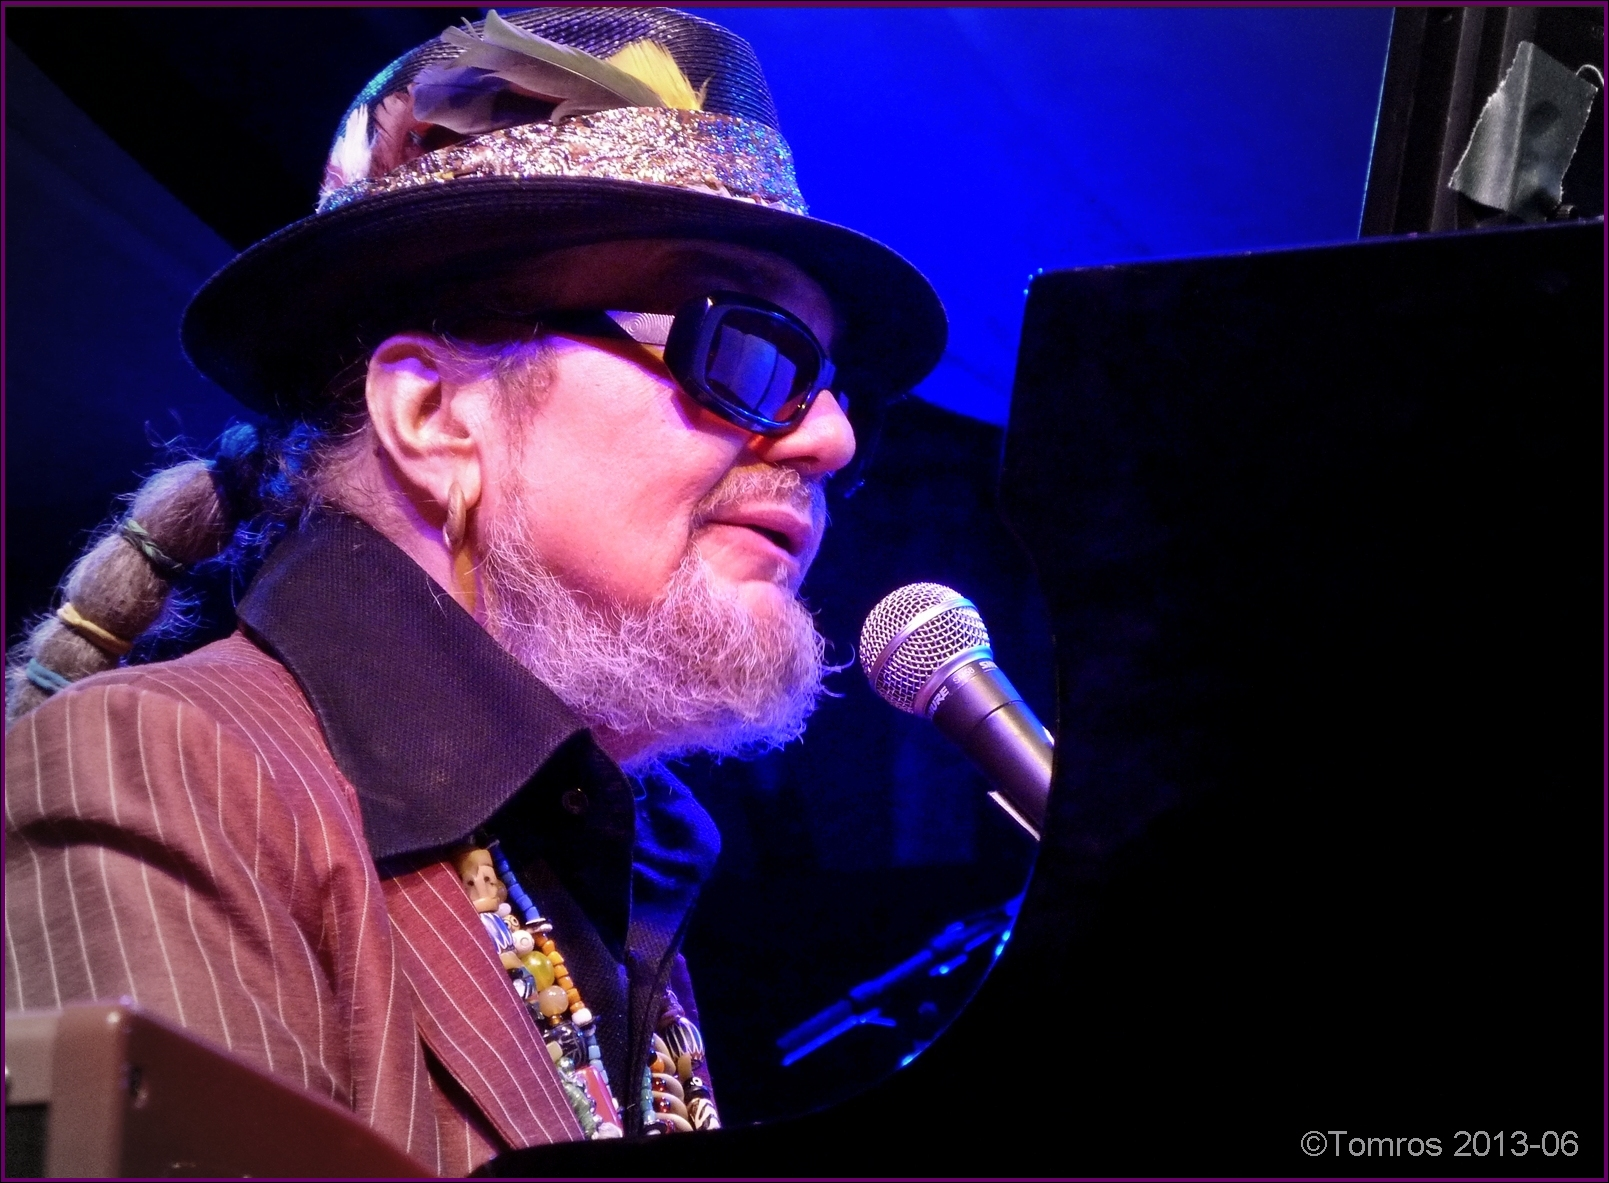 Dr. john at main stage, toronto jazz festival, june 2013